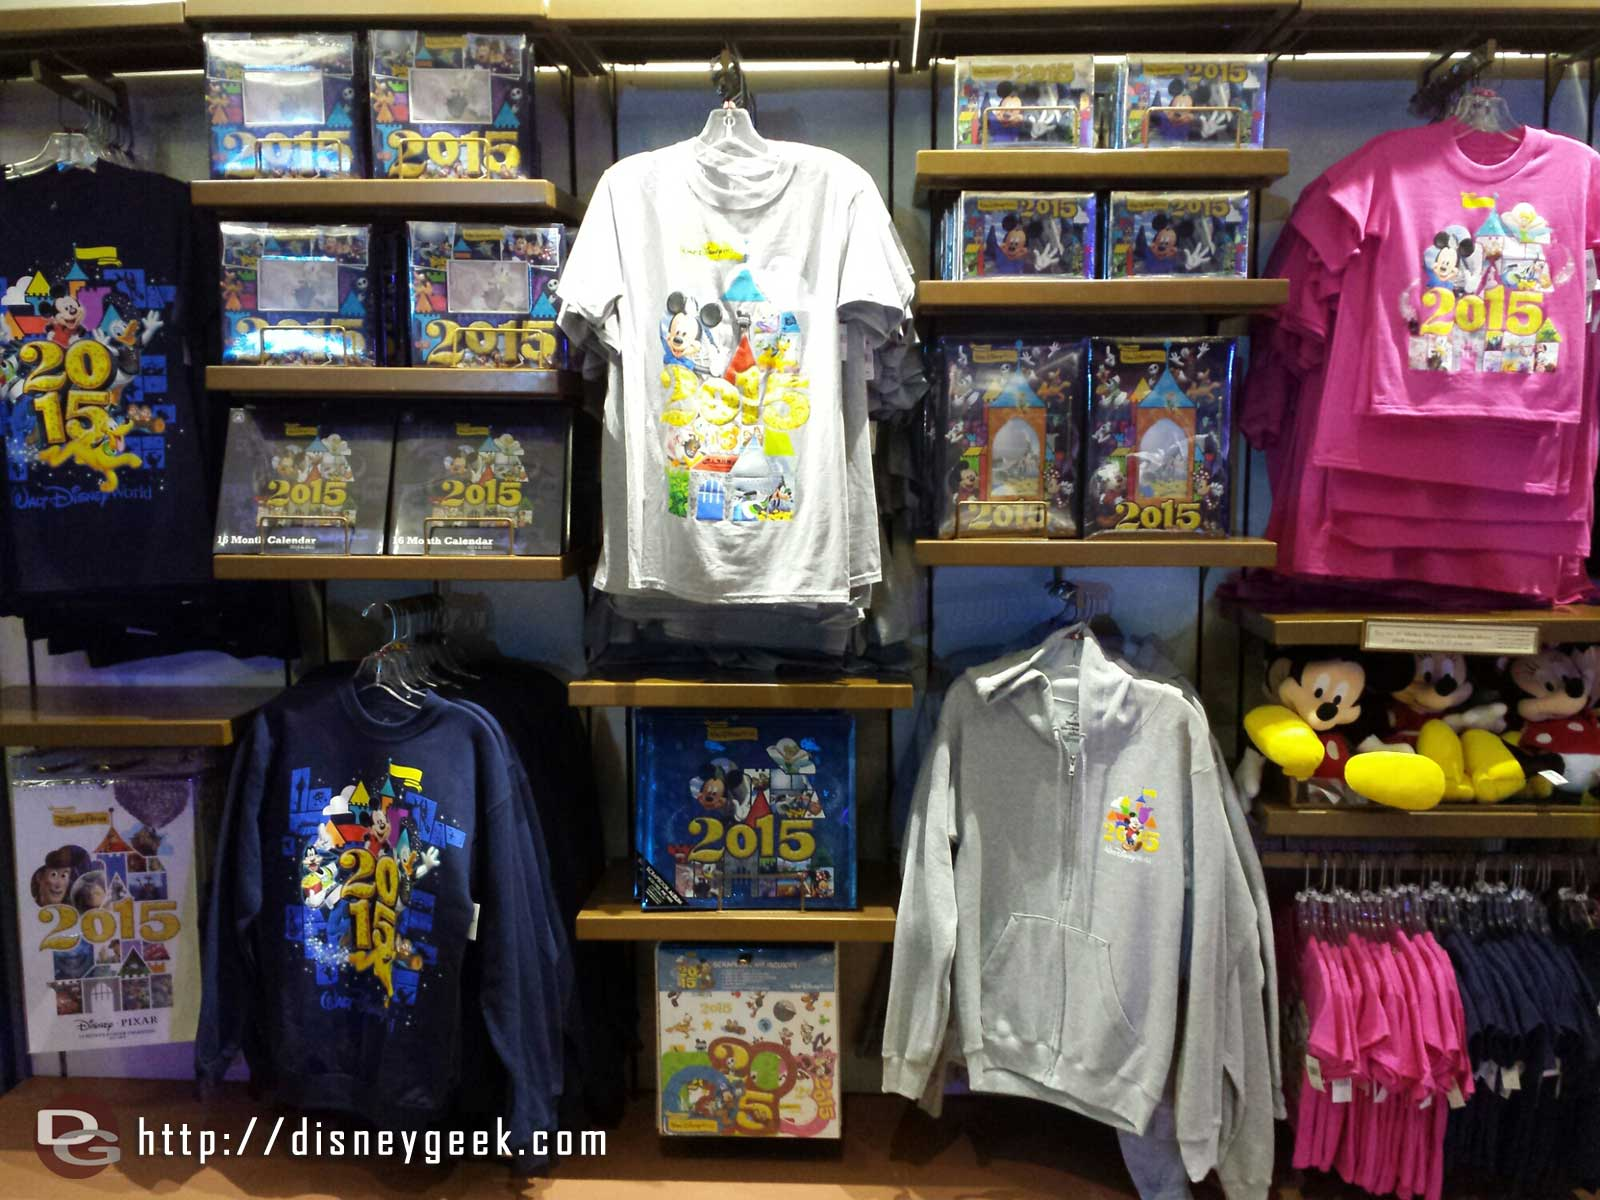 #WDW 2015 Merchandise out at the kiosk in #Epcot between World Showcase & Future World